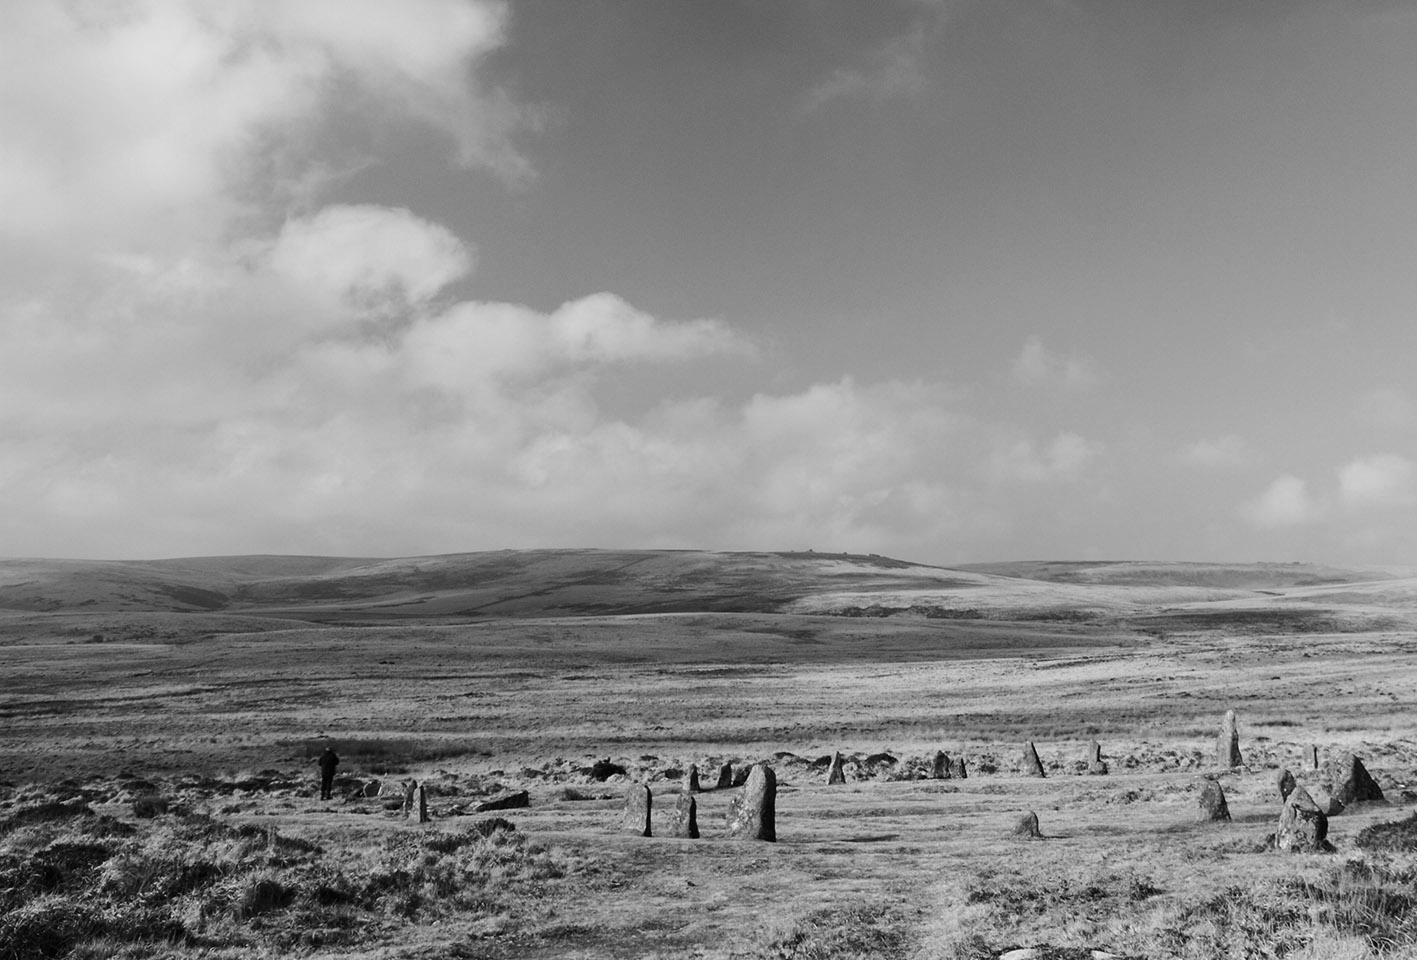 A photograph of the Dartmoor landscape